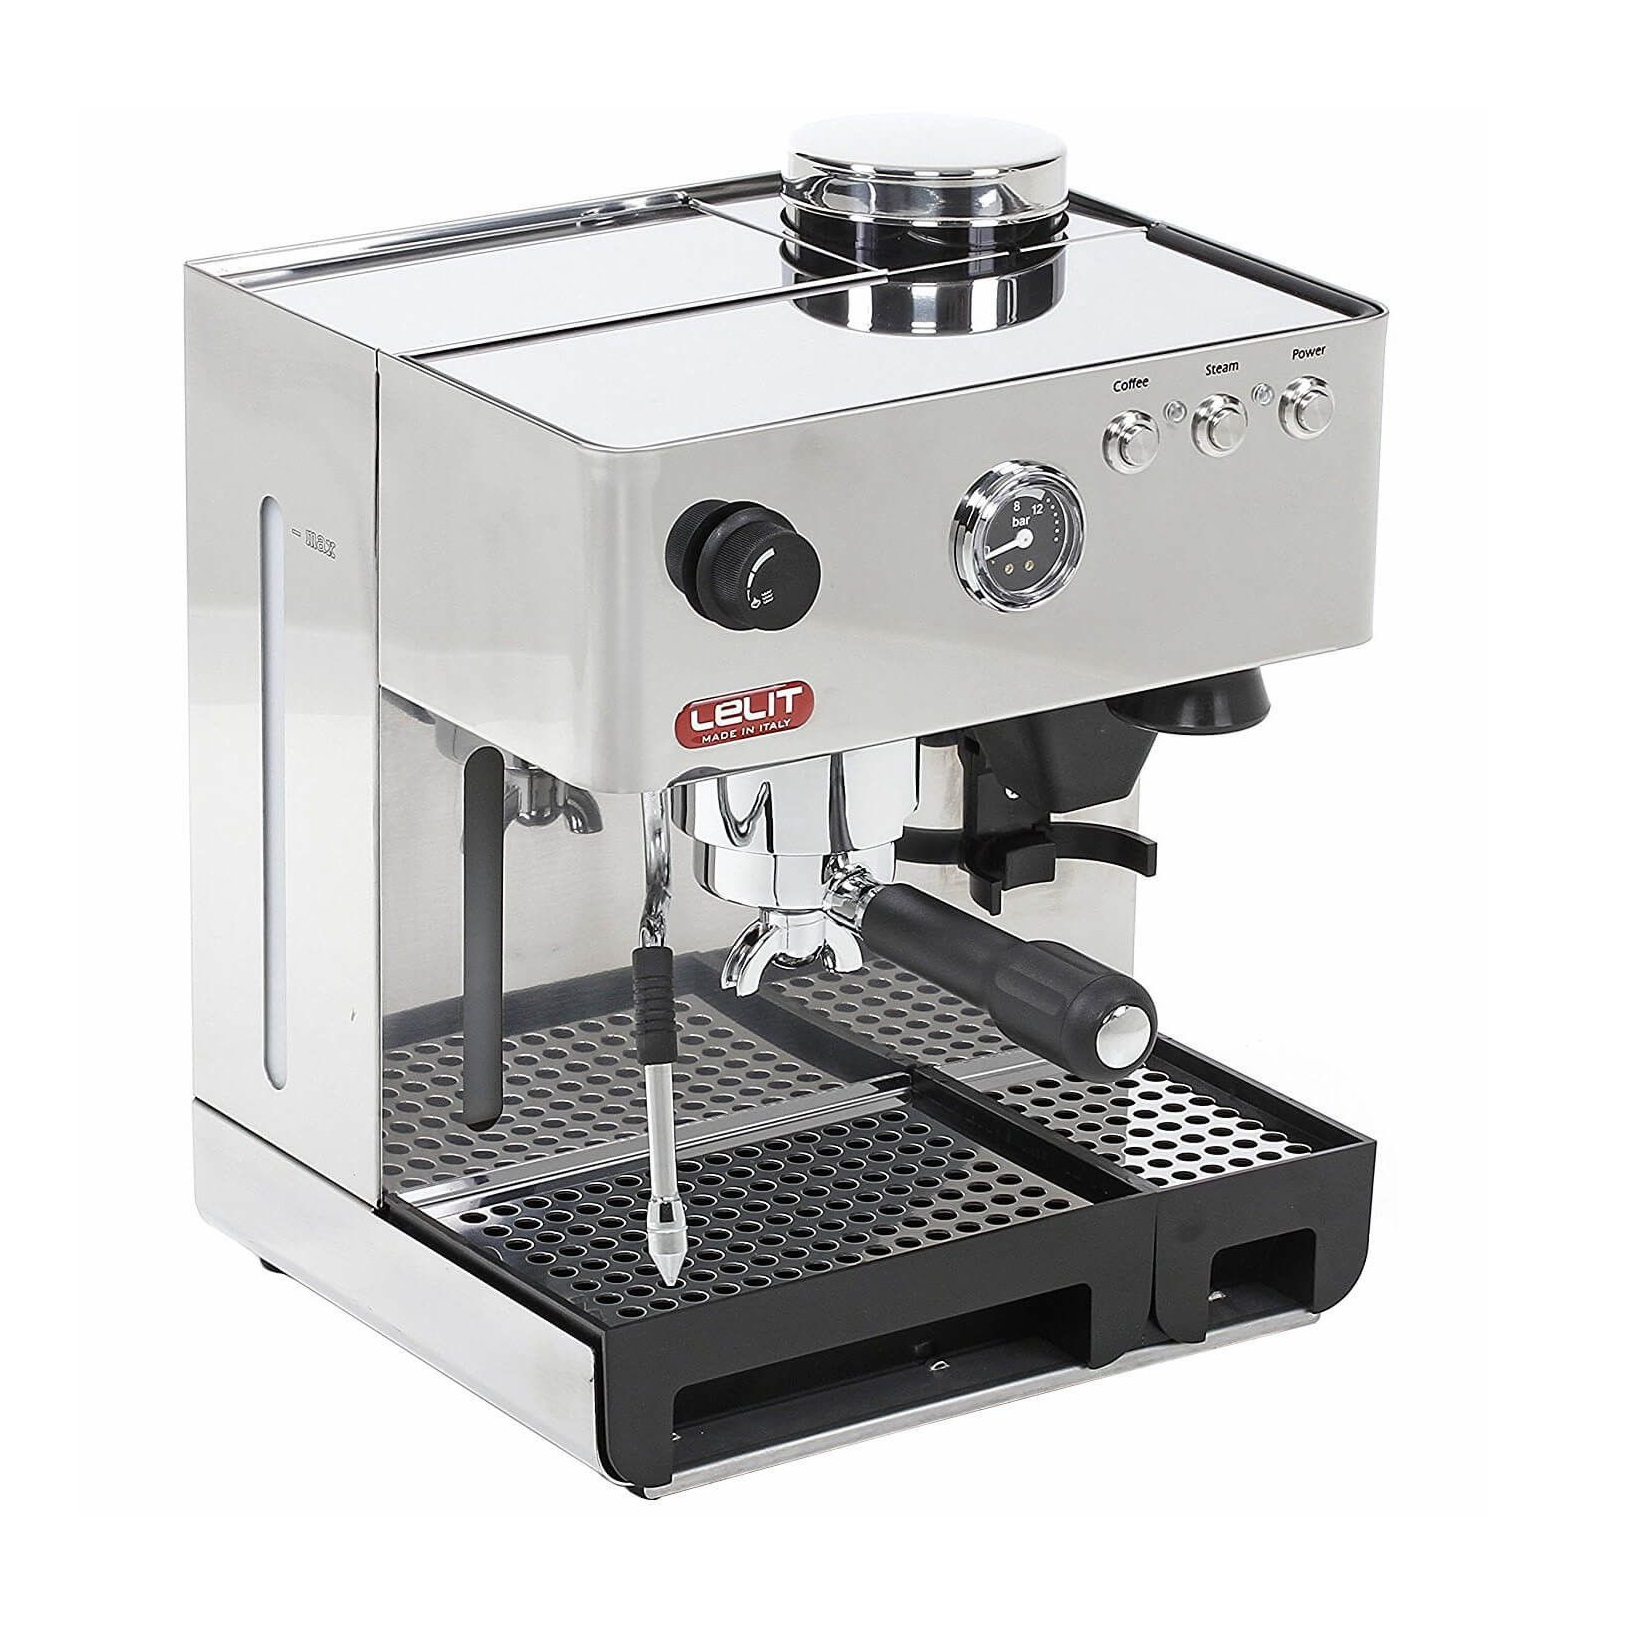 Espressor manual Lelit PL 42 EMI, 1200 W, 2.7 L, 15 bar, rasnita, manometru